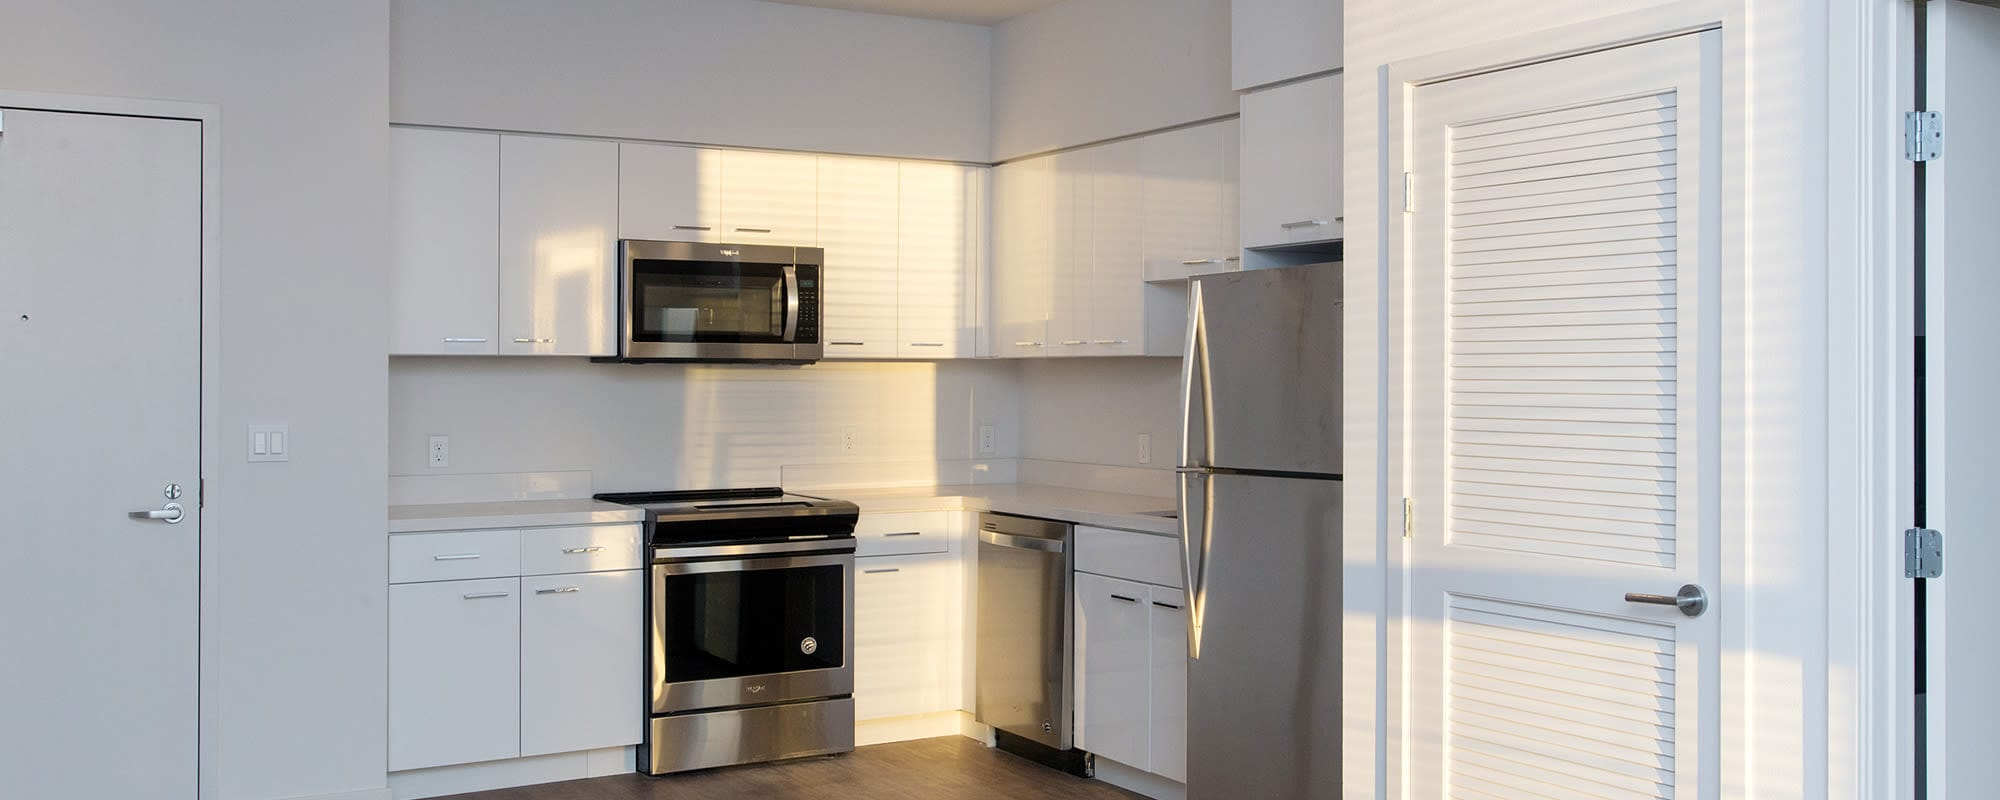 Apartments with stainless steel appliances at The Moran